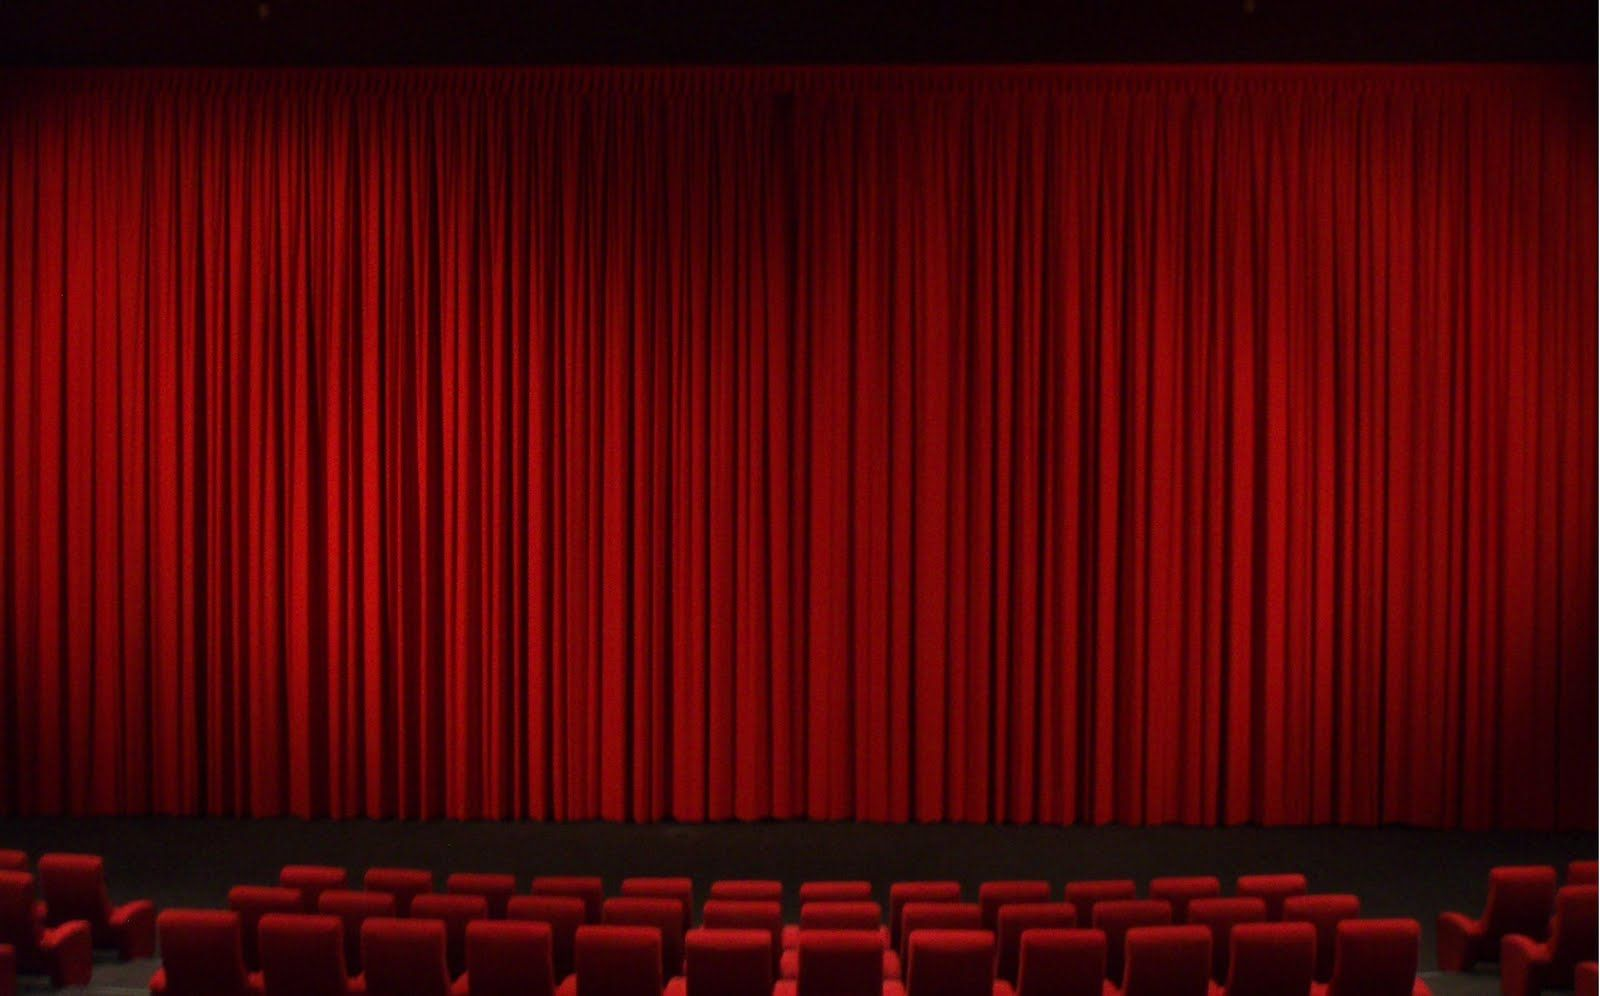 stagecurtaintracks stage curtains for theater show home interior